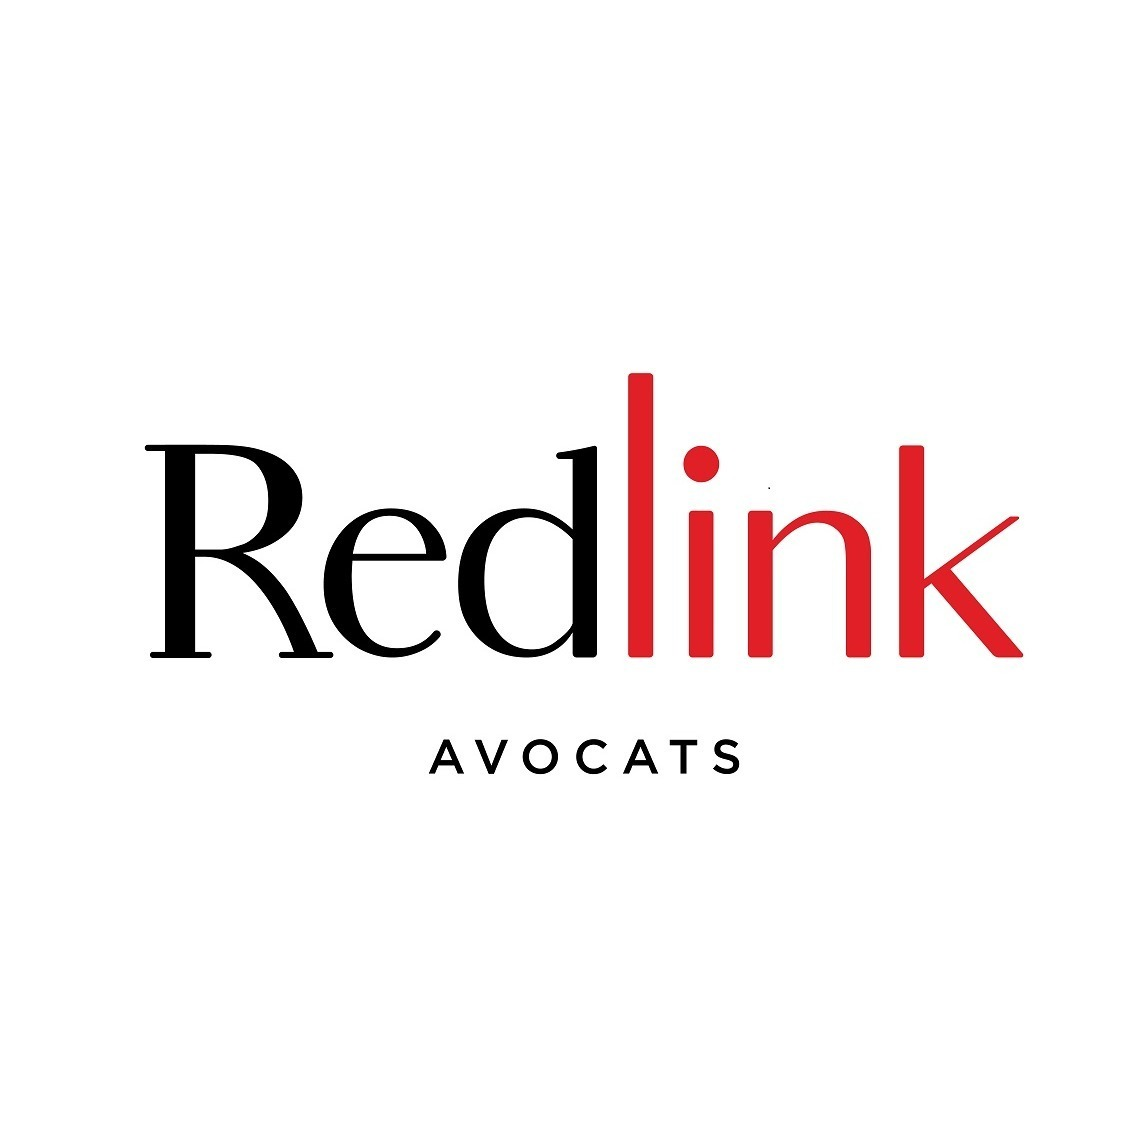 the Redlink logo.